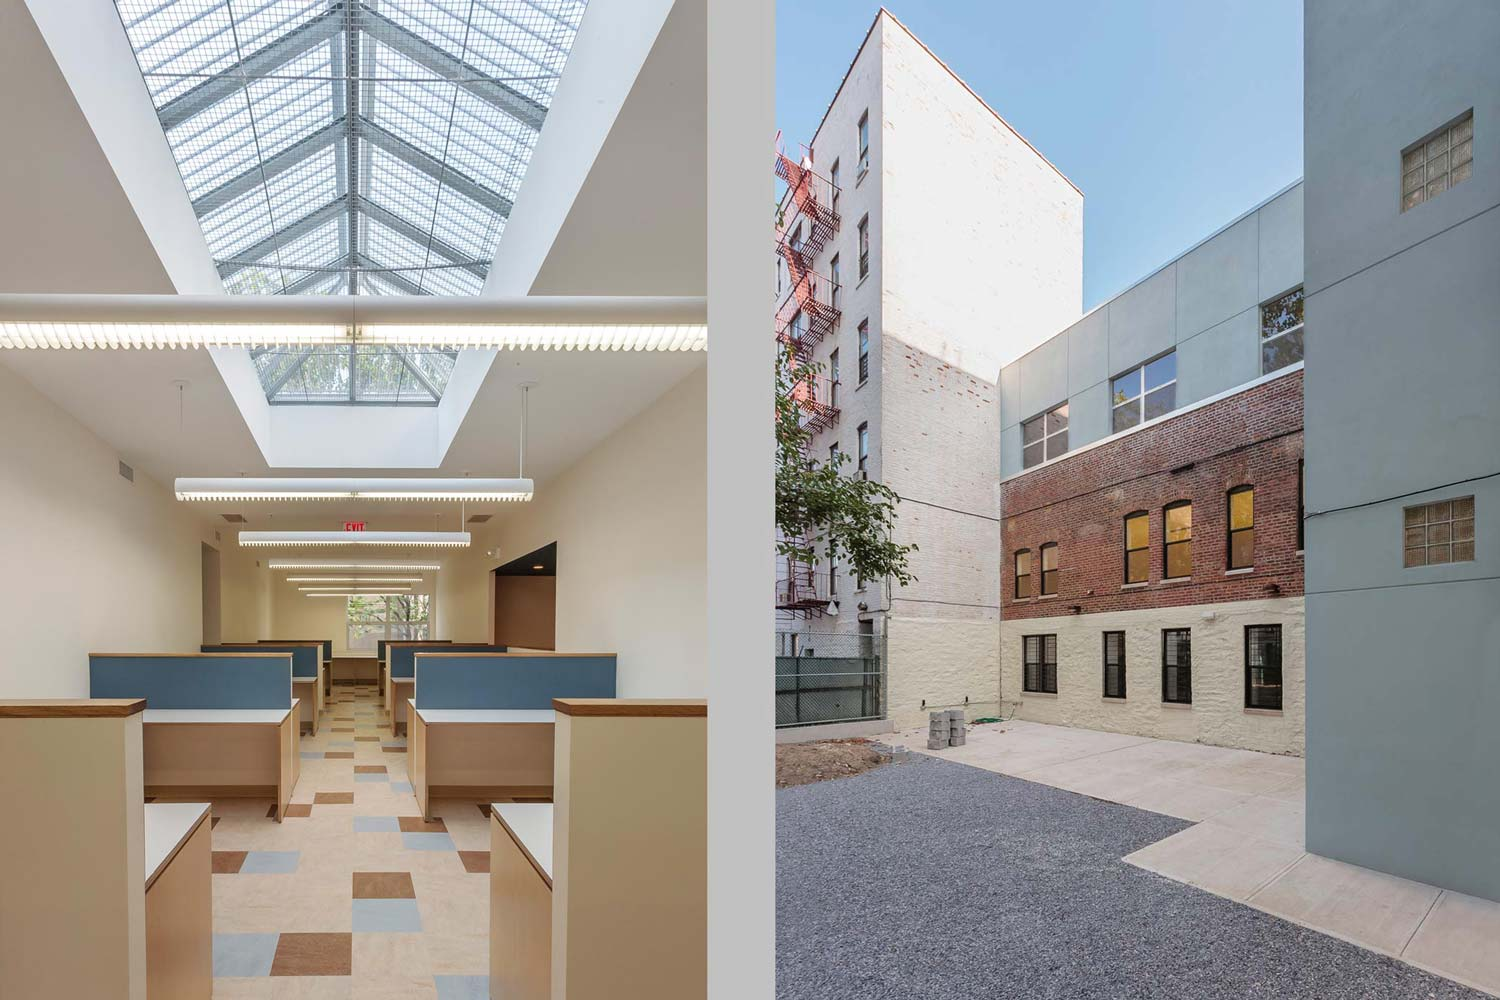 OCV introduced a large sky light above the second story and rear yard at BronxWorks offices.